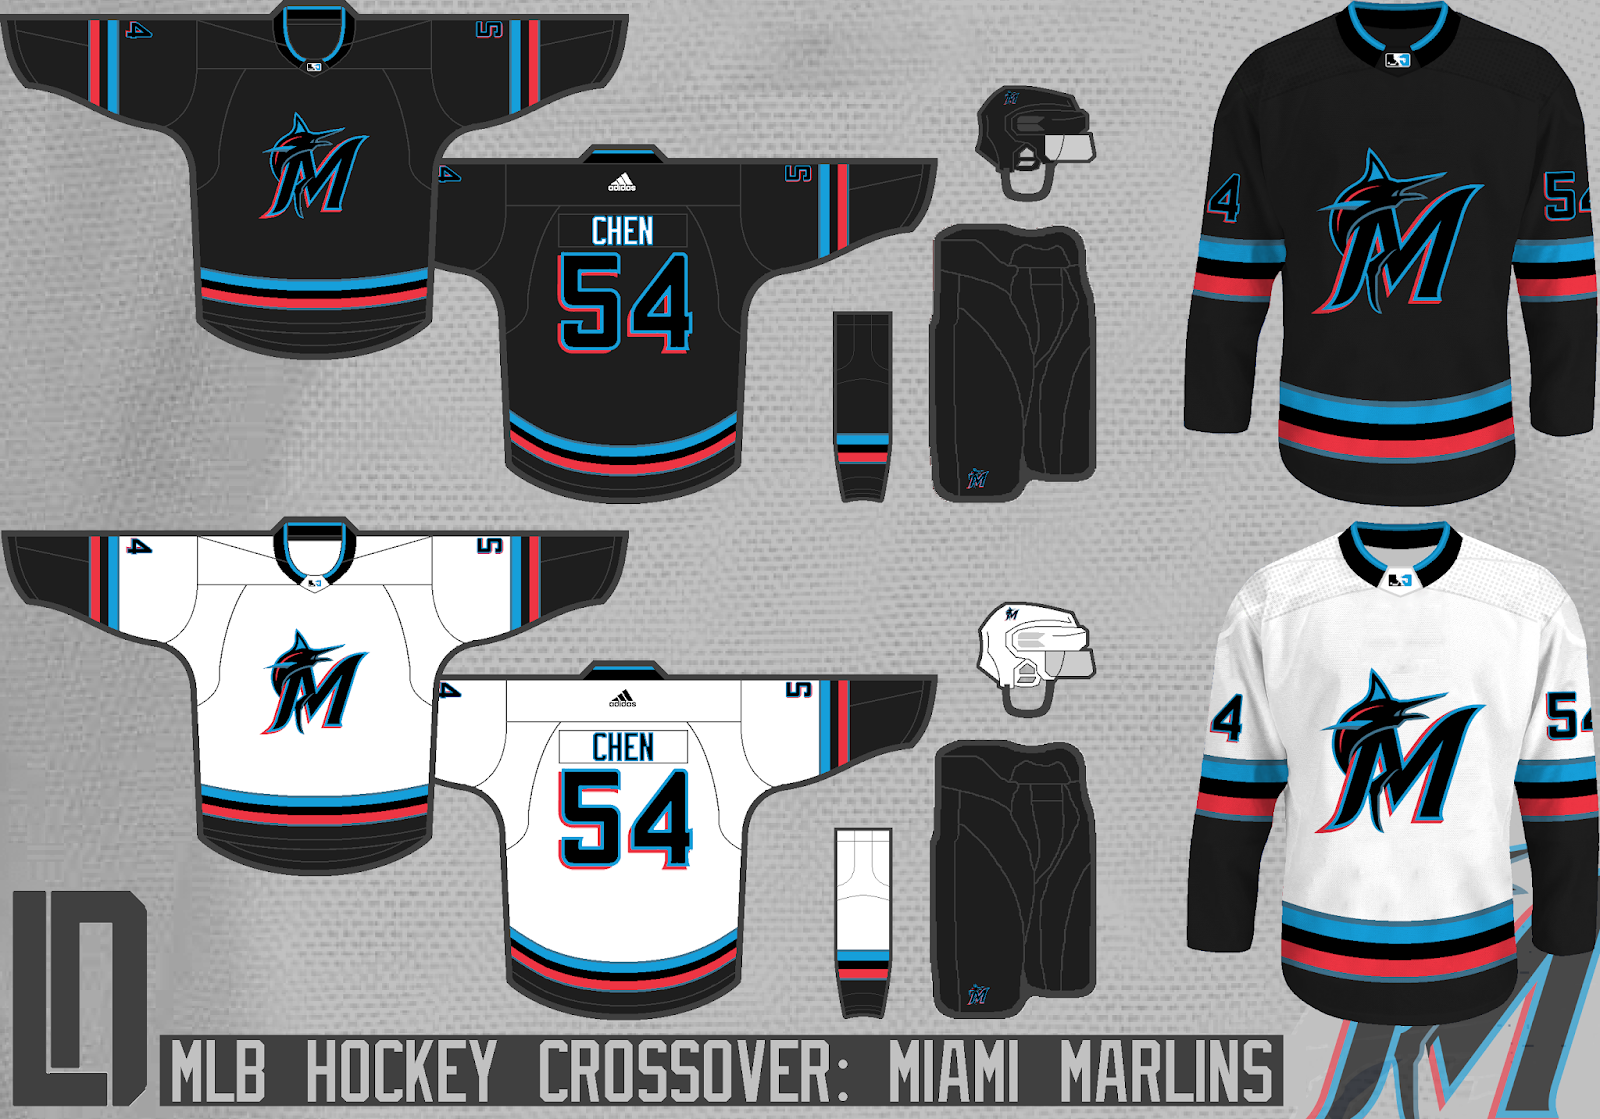 Miami+Marlins+Update.png